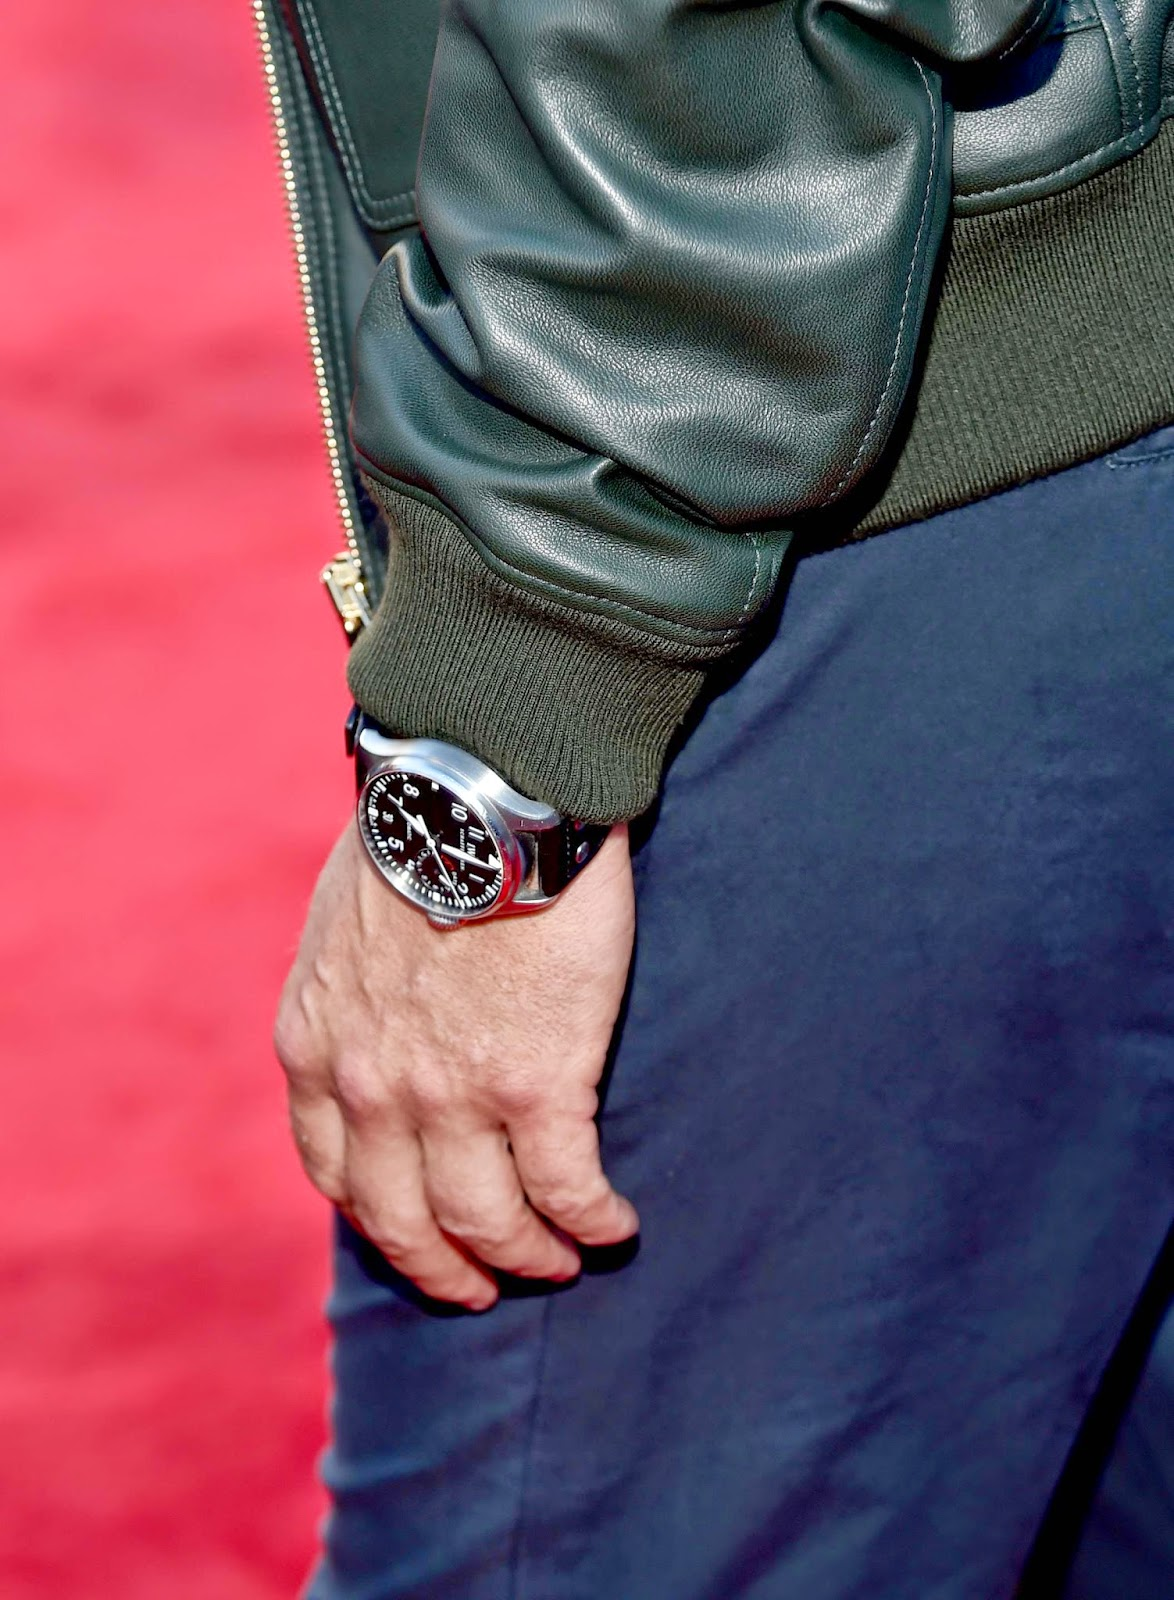 Bradley Cooper's watch